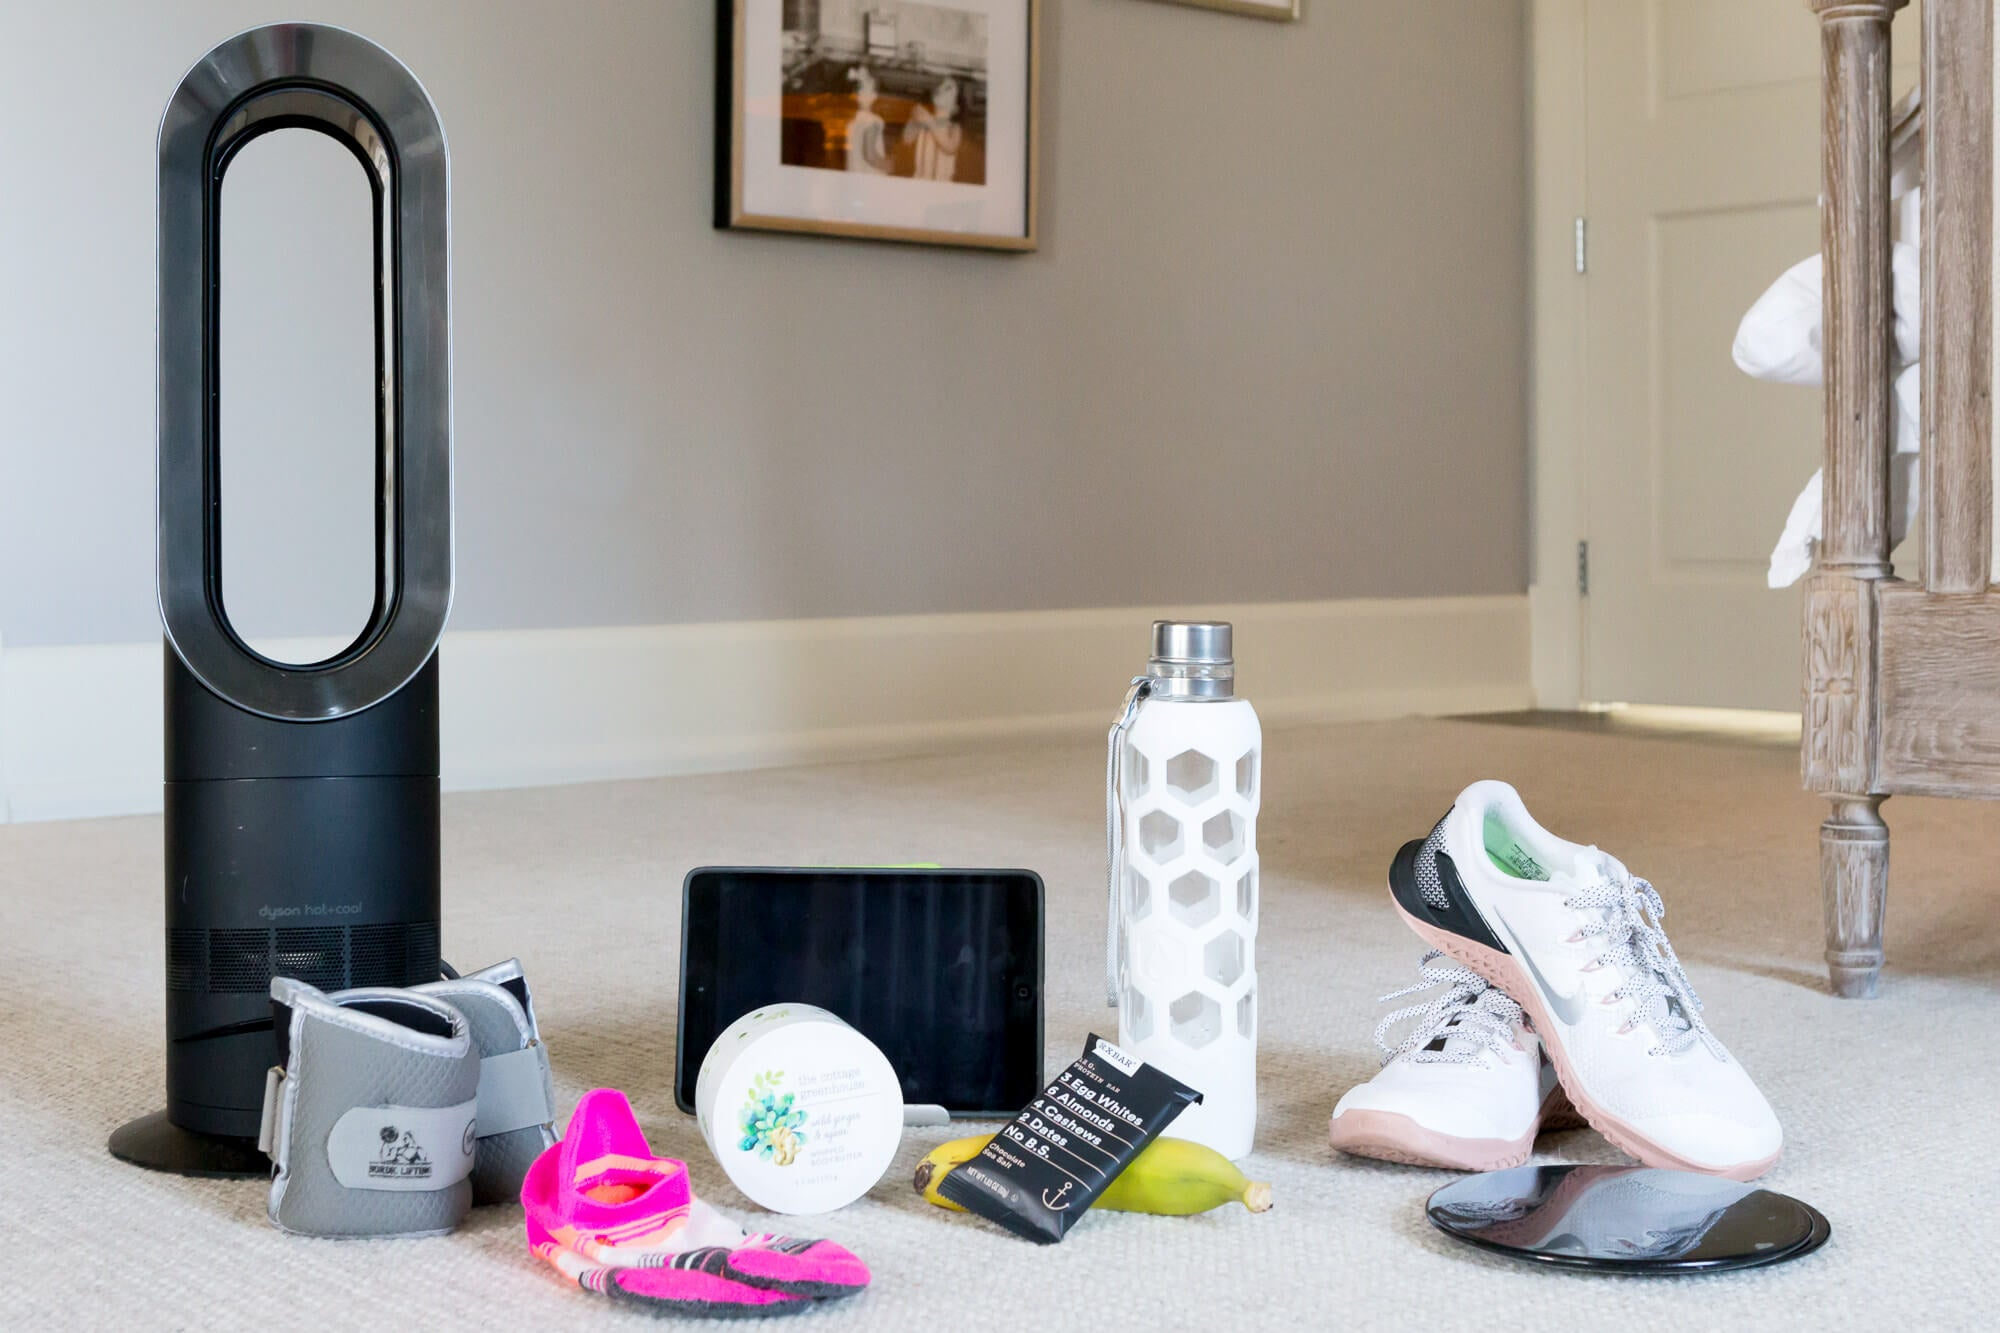 8 Tips for Achieving Results with Your At-Home Workout